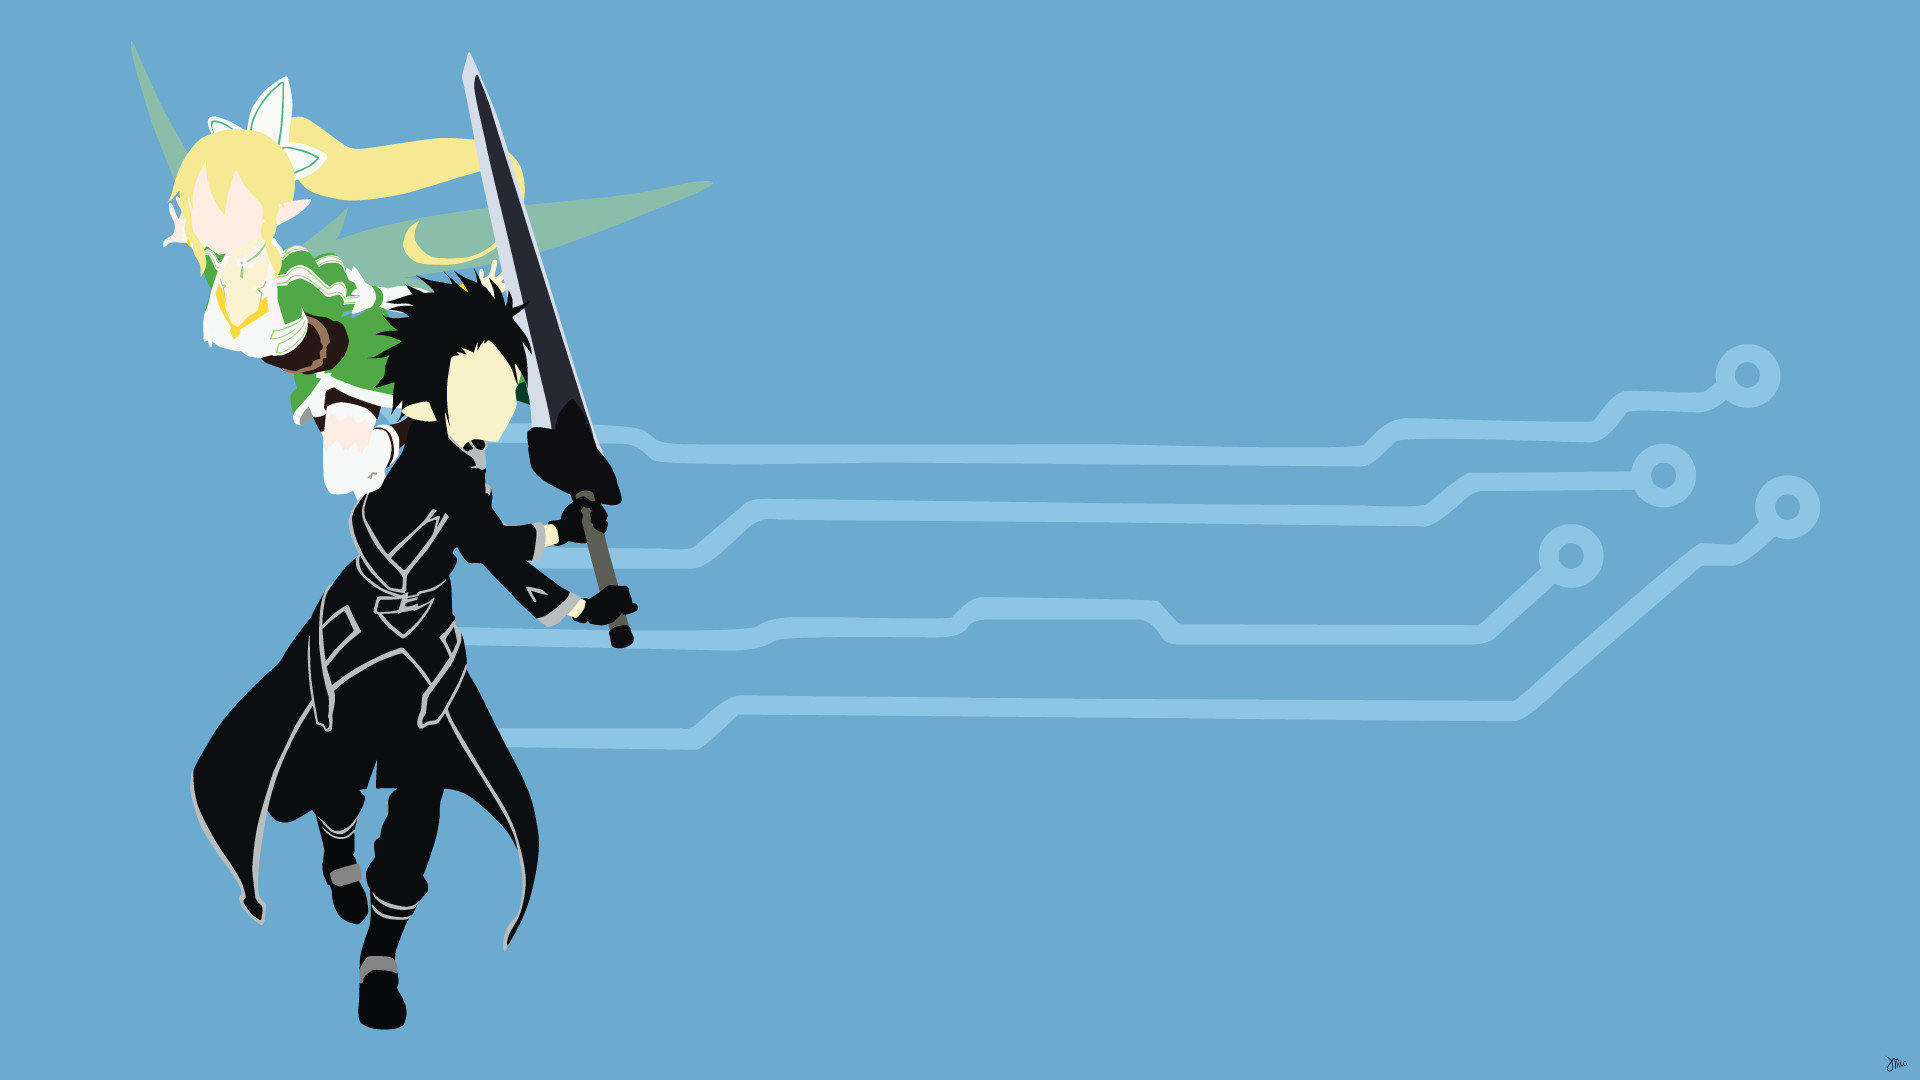 Awesome Sword Art Online (SAO) free wallpaper ID:181447 for hd 1920x1080 desktop